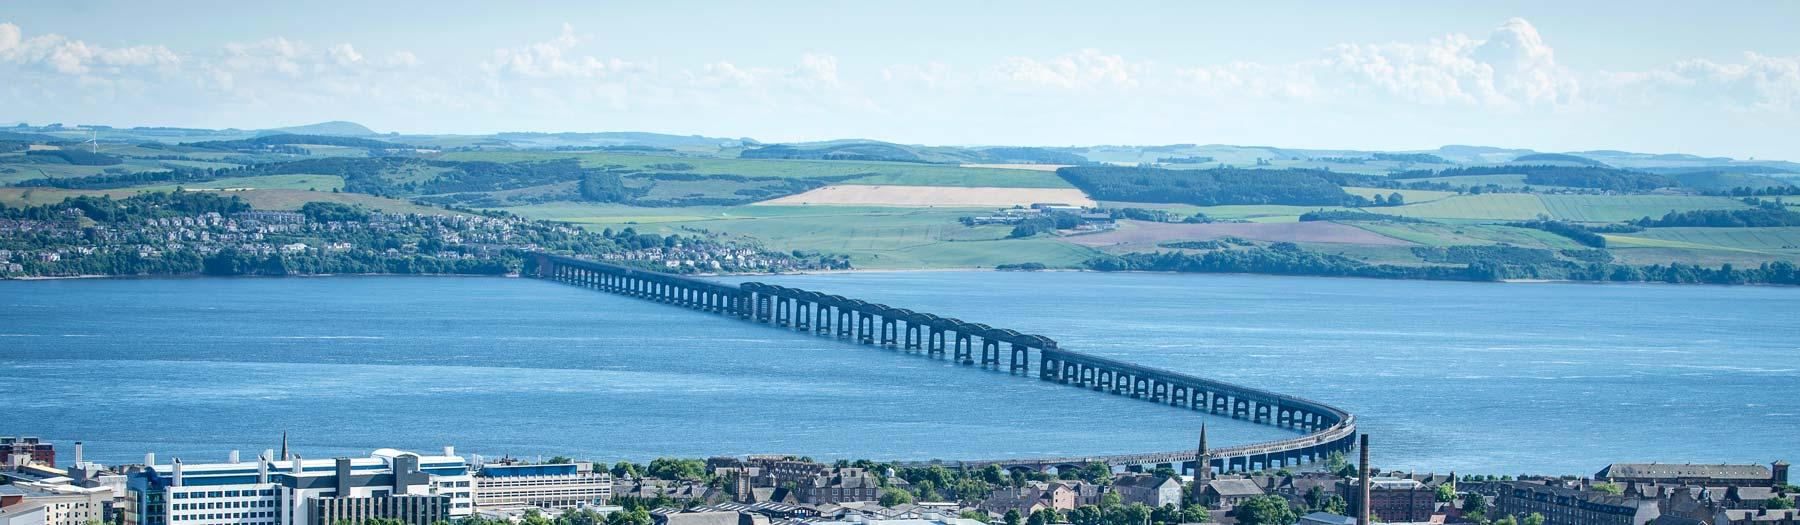 Image: Tay Rail Bridge seen from The Law. Credit: Image used with permission from VisitScotland and Scottish Viewpoint.